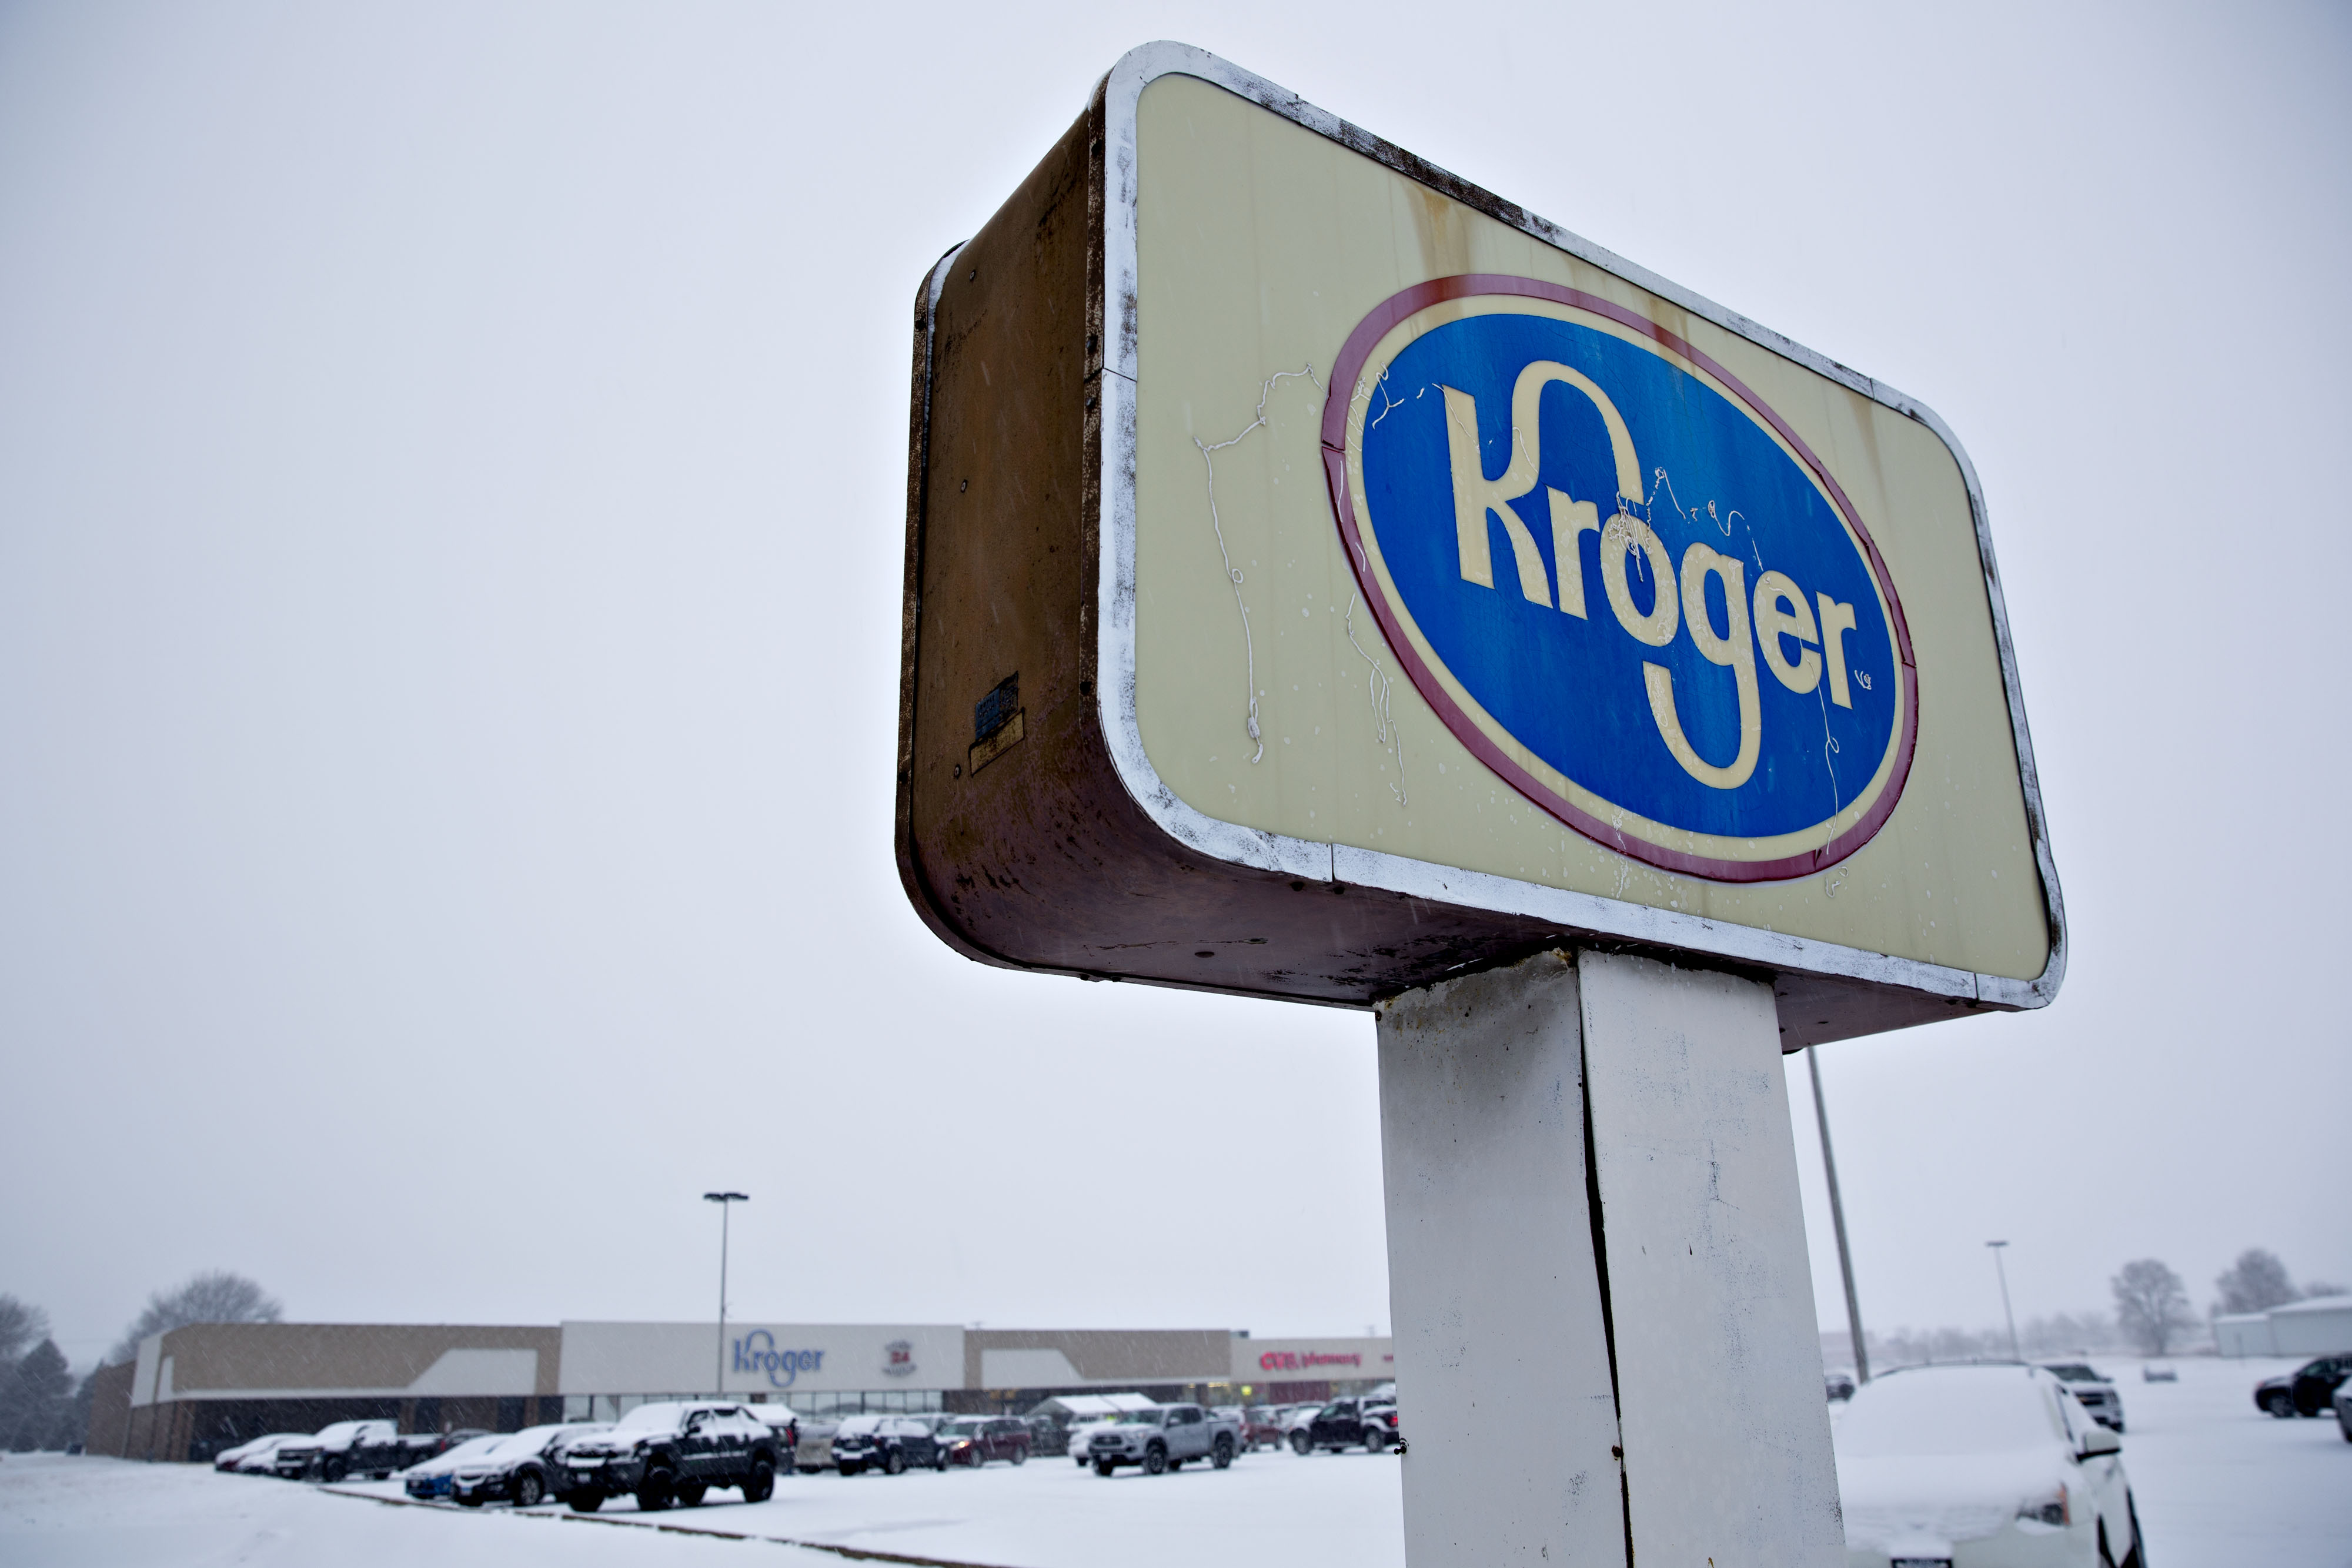 Kroger Co. signage stands outside the company's supermarket in Sterling, Illinois, U.S., on Monday, Feb. 5, 2018.